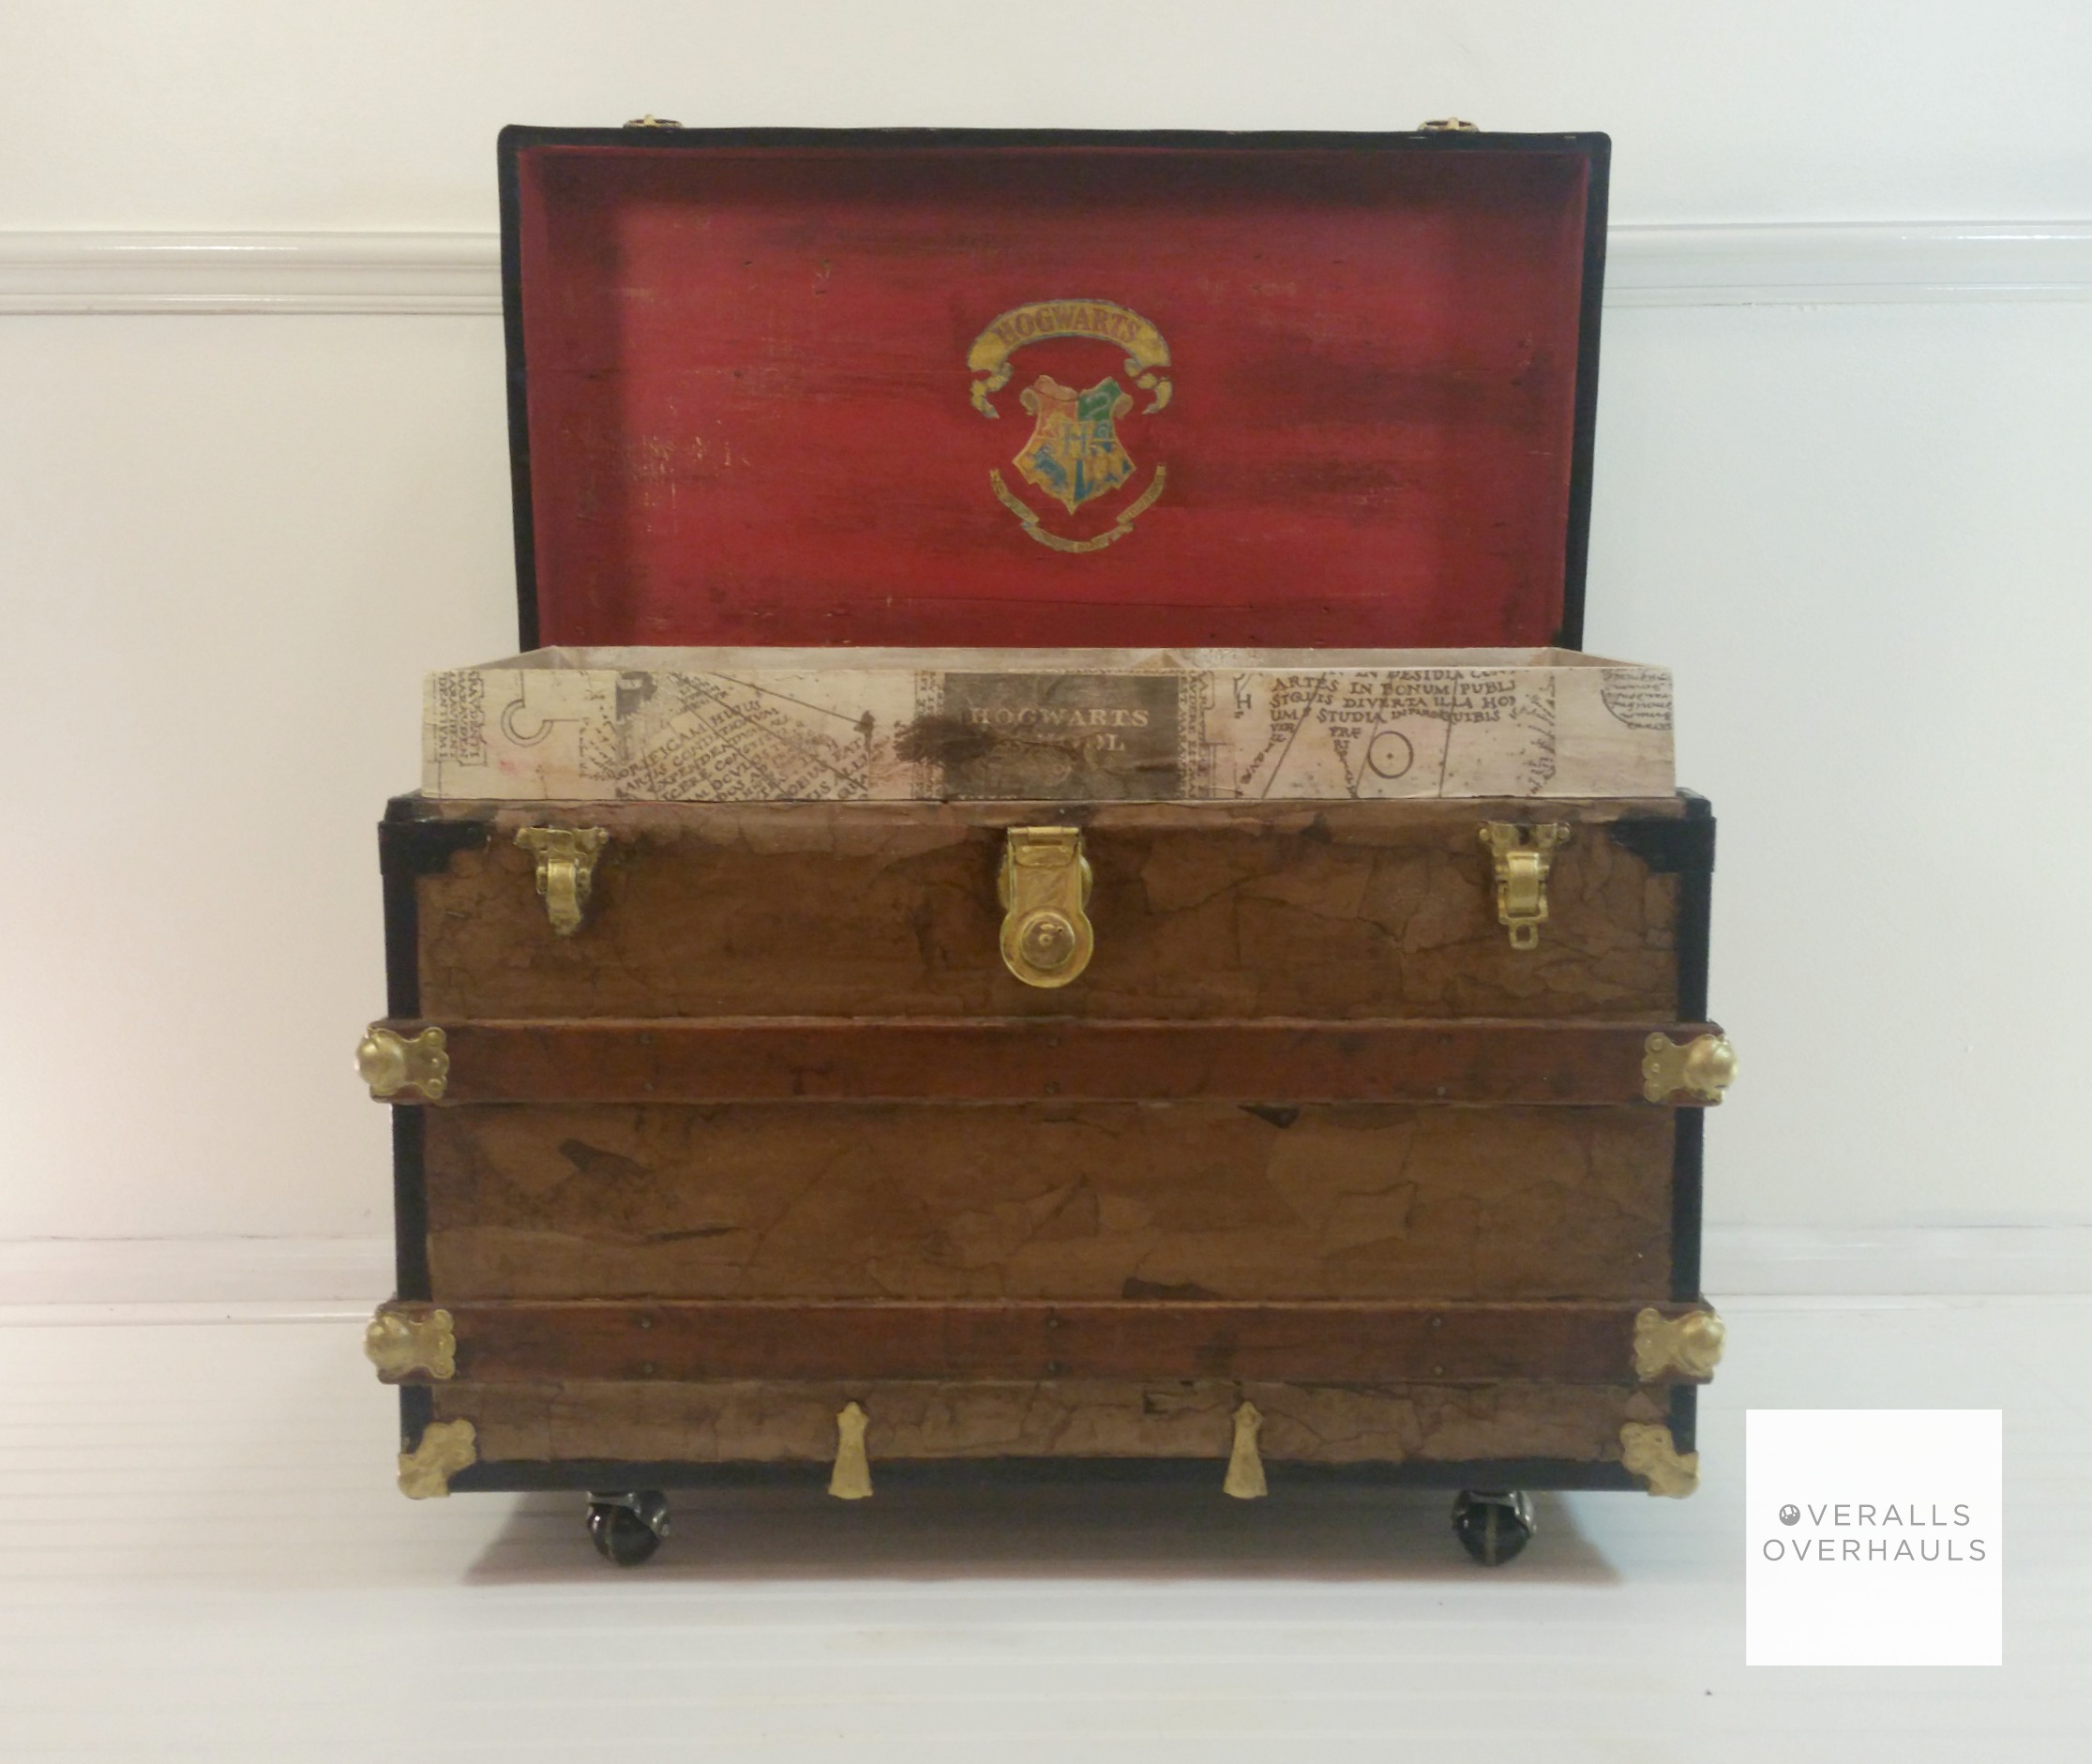 The inside is the fun part! Distressed red lid with the Hogwart's crest. The lift out drawer that sits right inside the trunk is covered with portions of the Marauder's map.